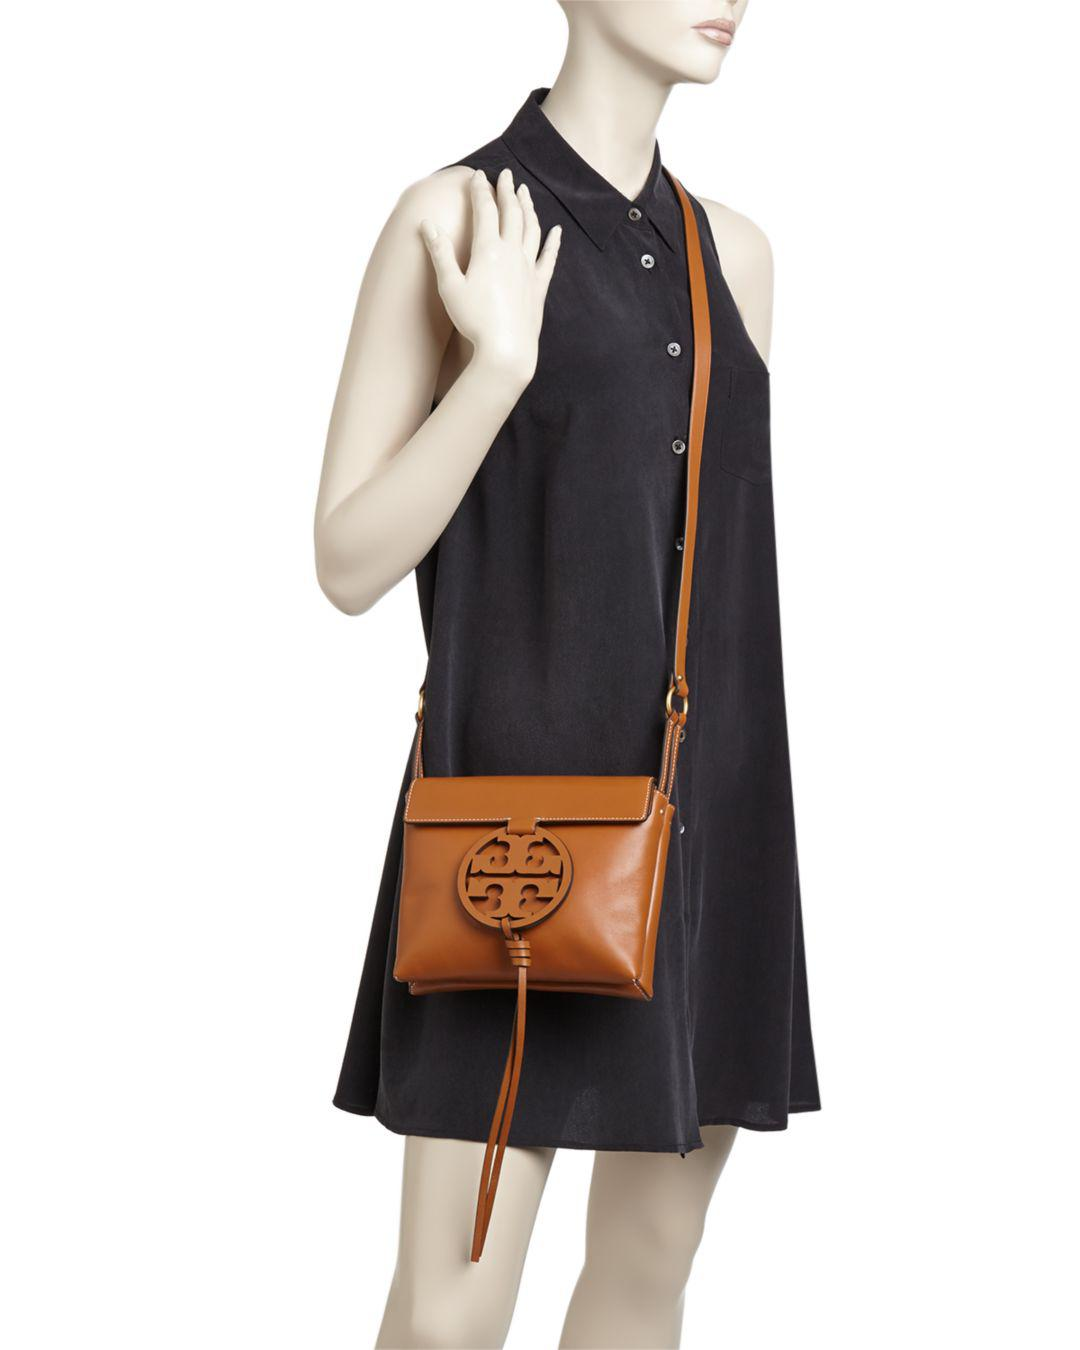 b9b6c4d8673d Lyst - Tory Burch Miller Leather Crossbody in Black - Save 20%